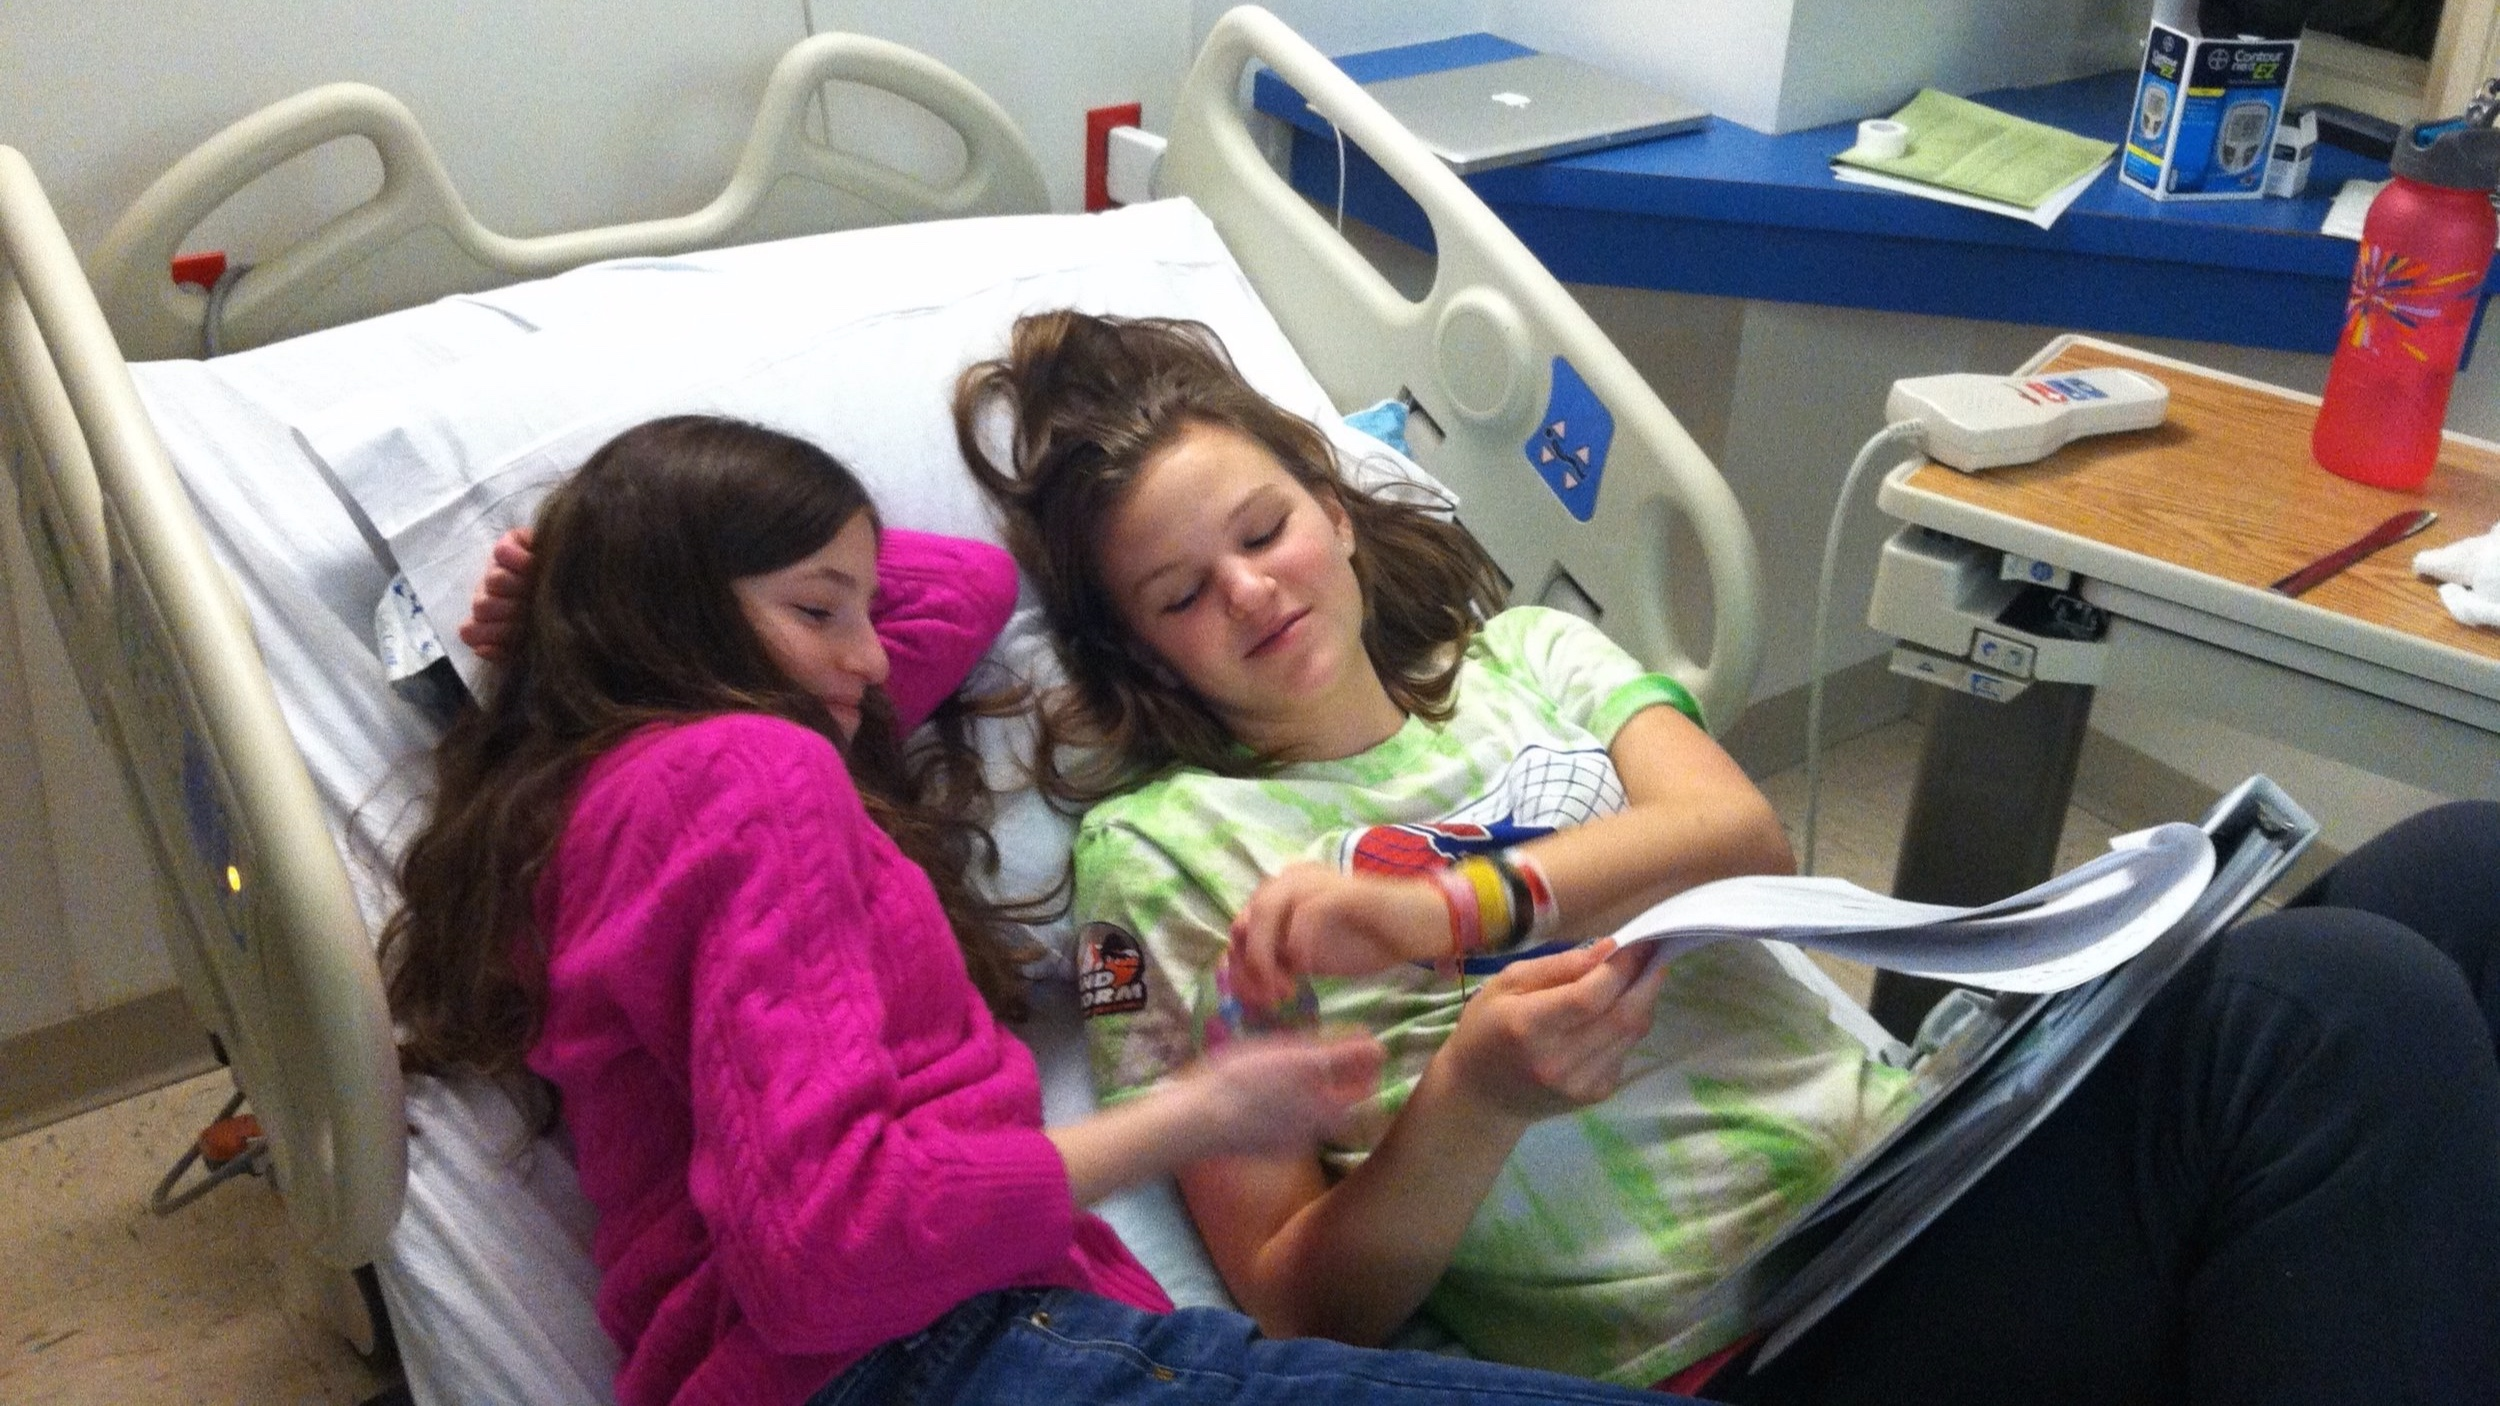 Pia visiting Abbie while Abbie's blood sugars stabilize.